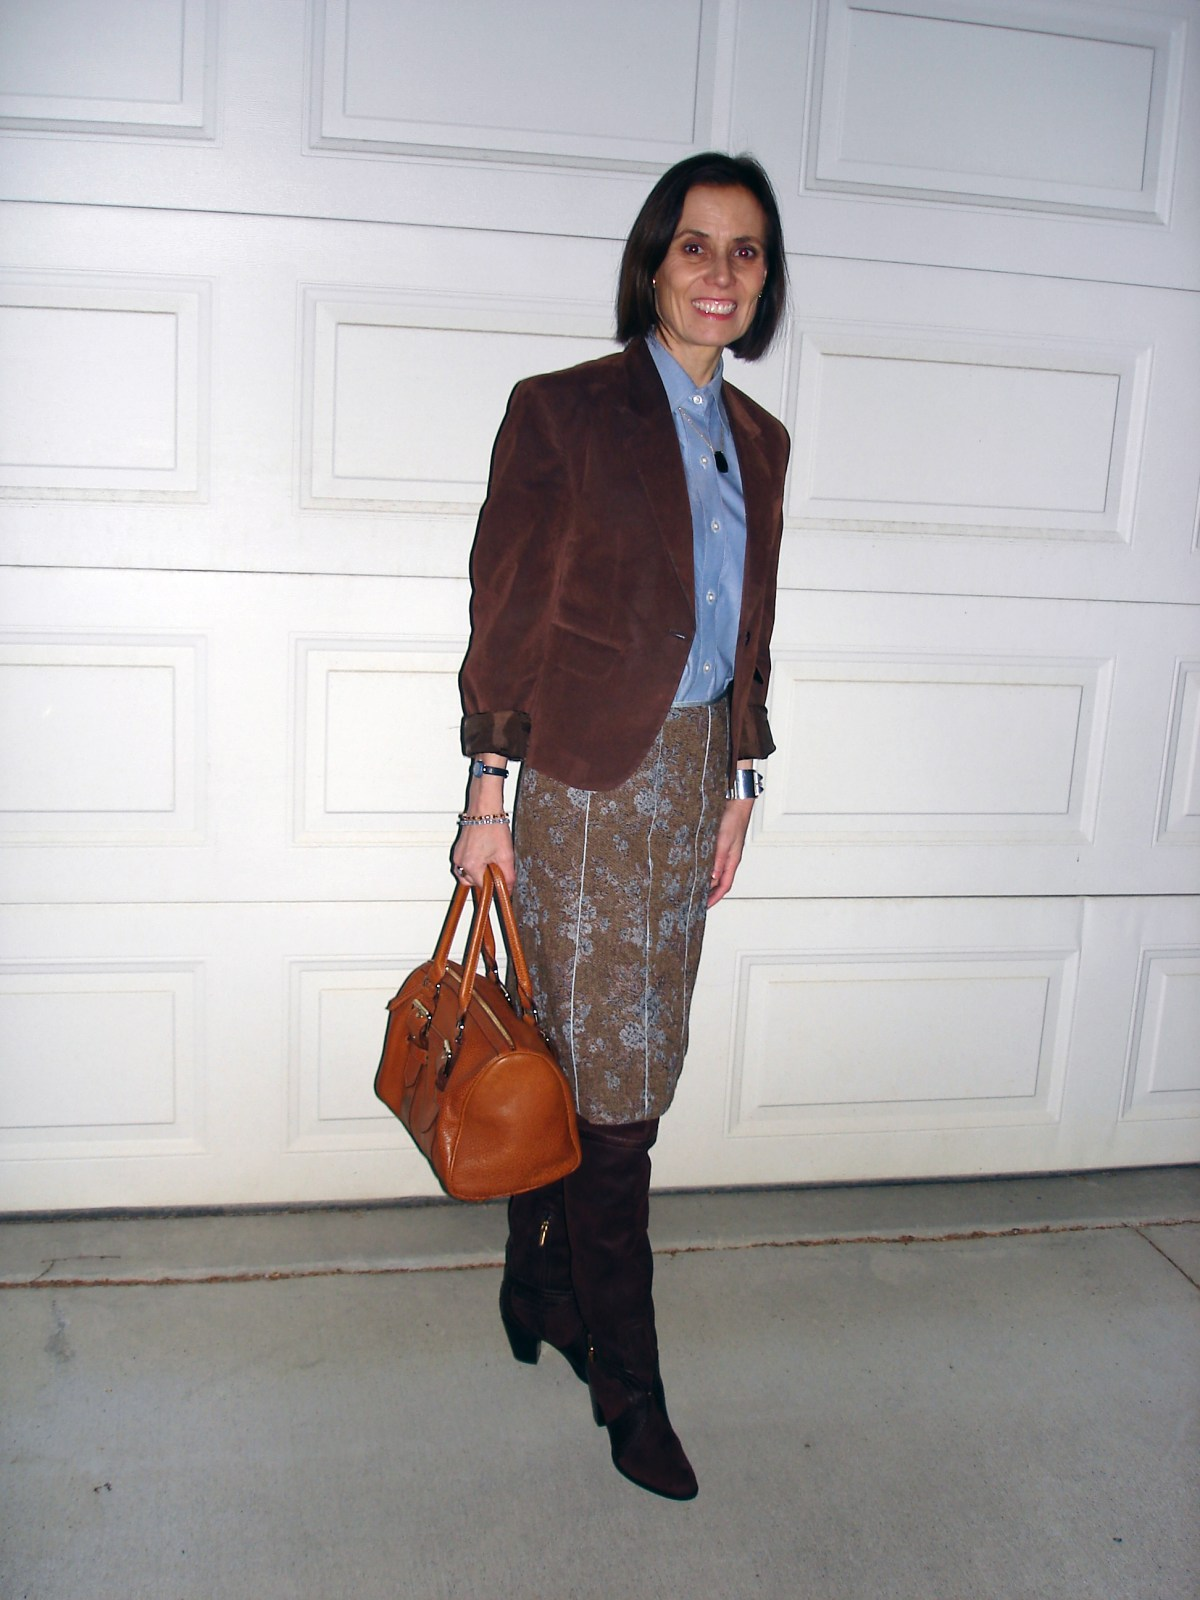 midlife woman in a tweed skirt with button-down shirt and suede blazer for a winter office look